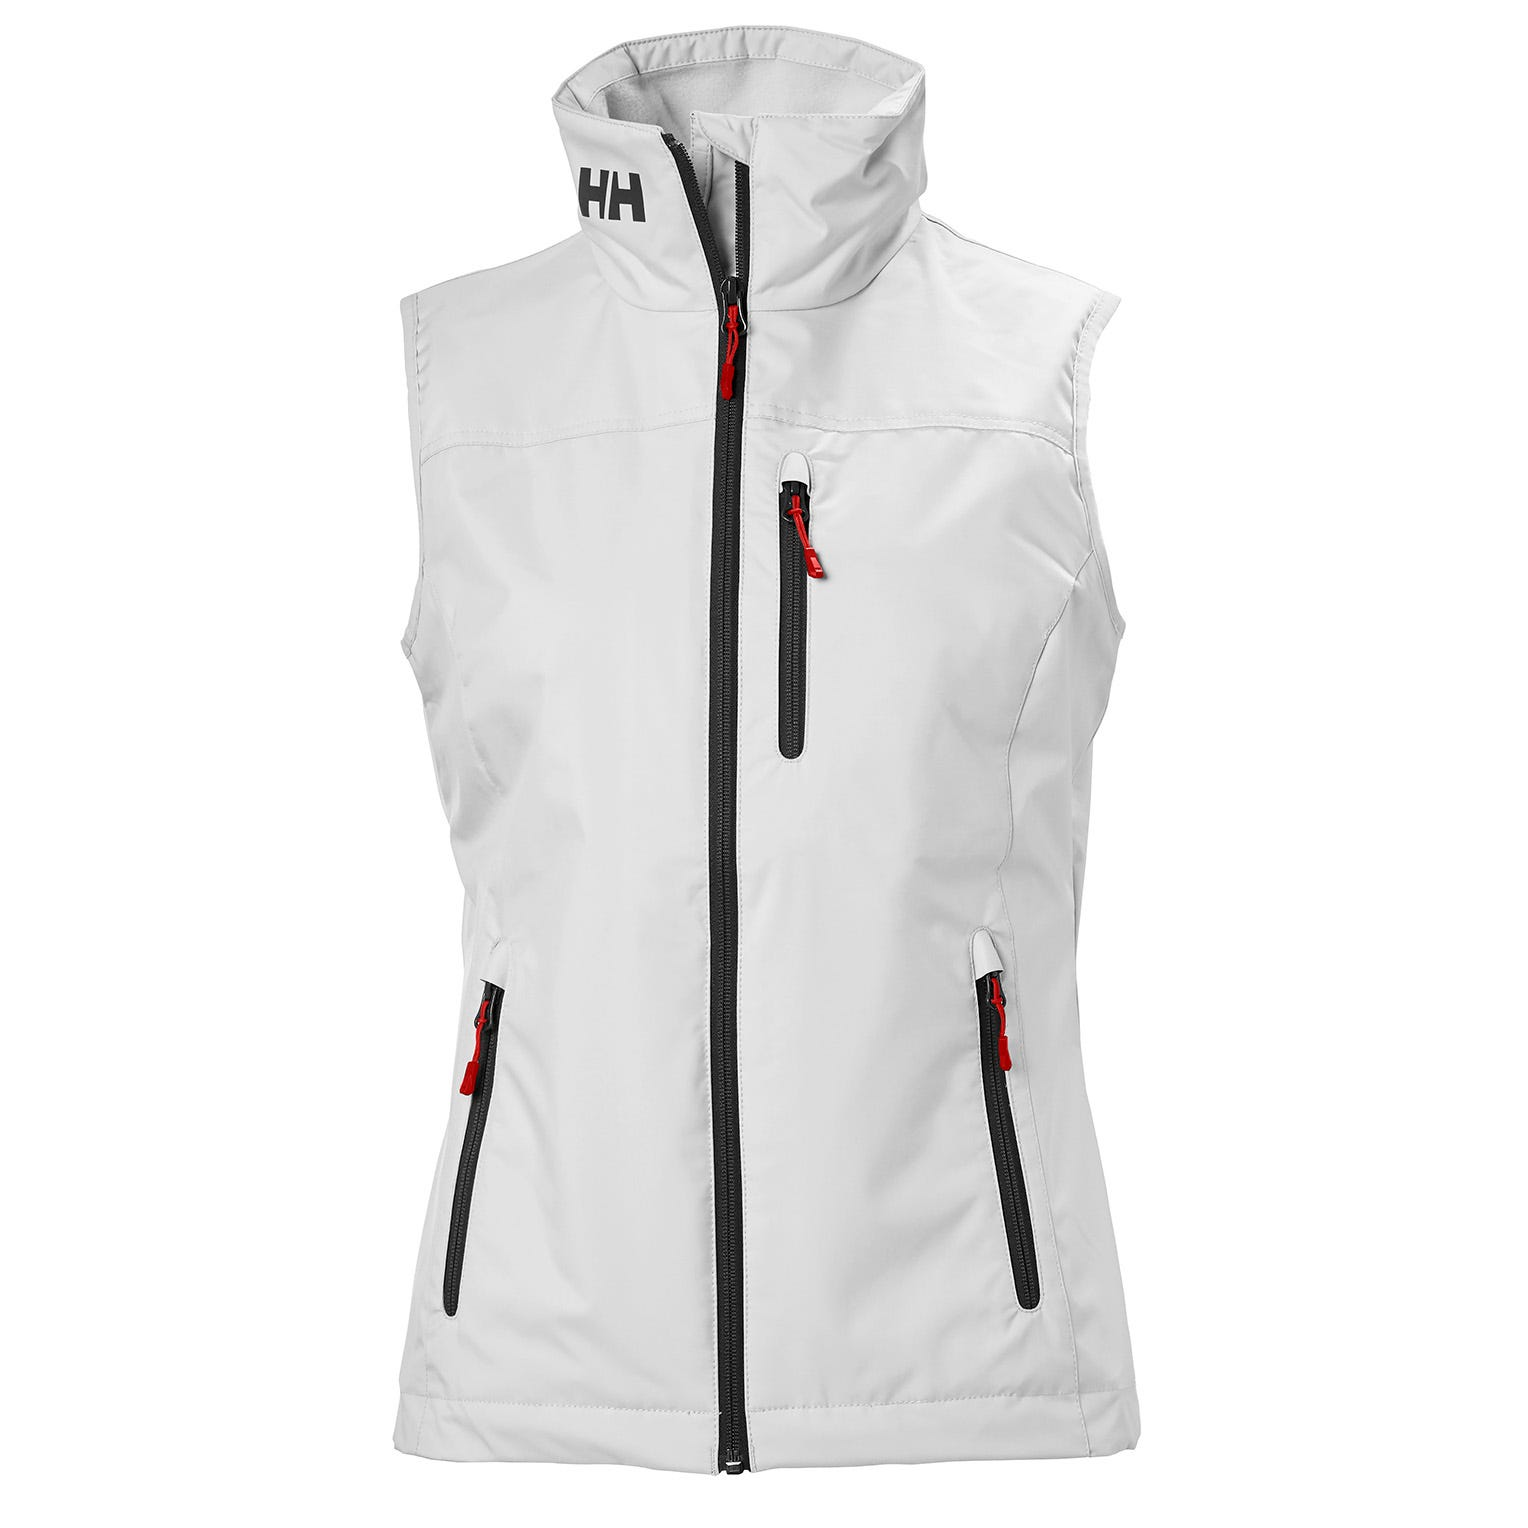 Helly Hansen Womens Sailing Jacket White S